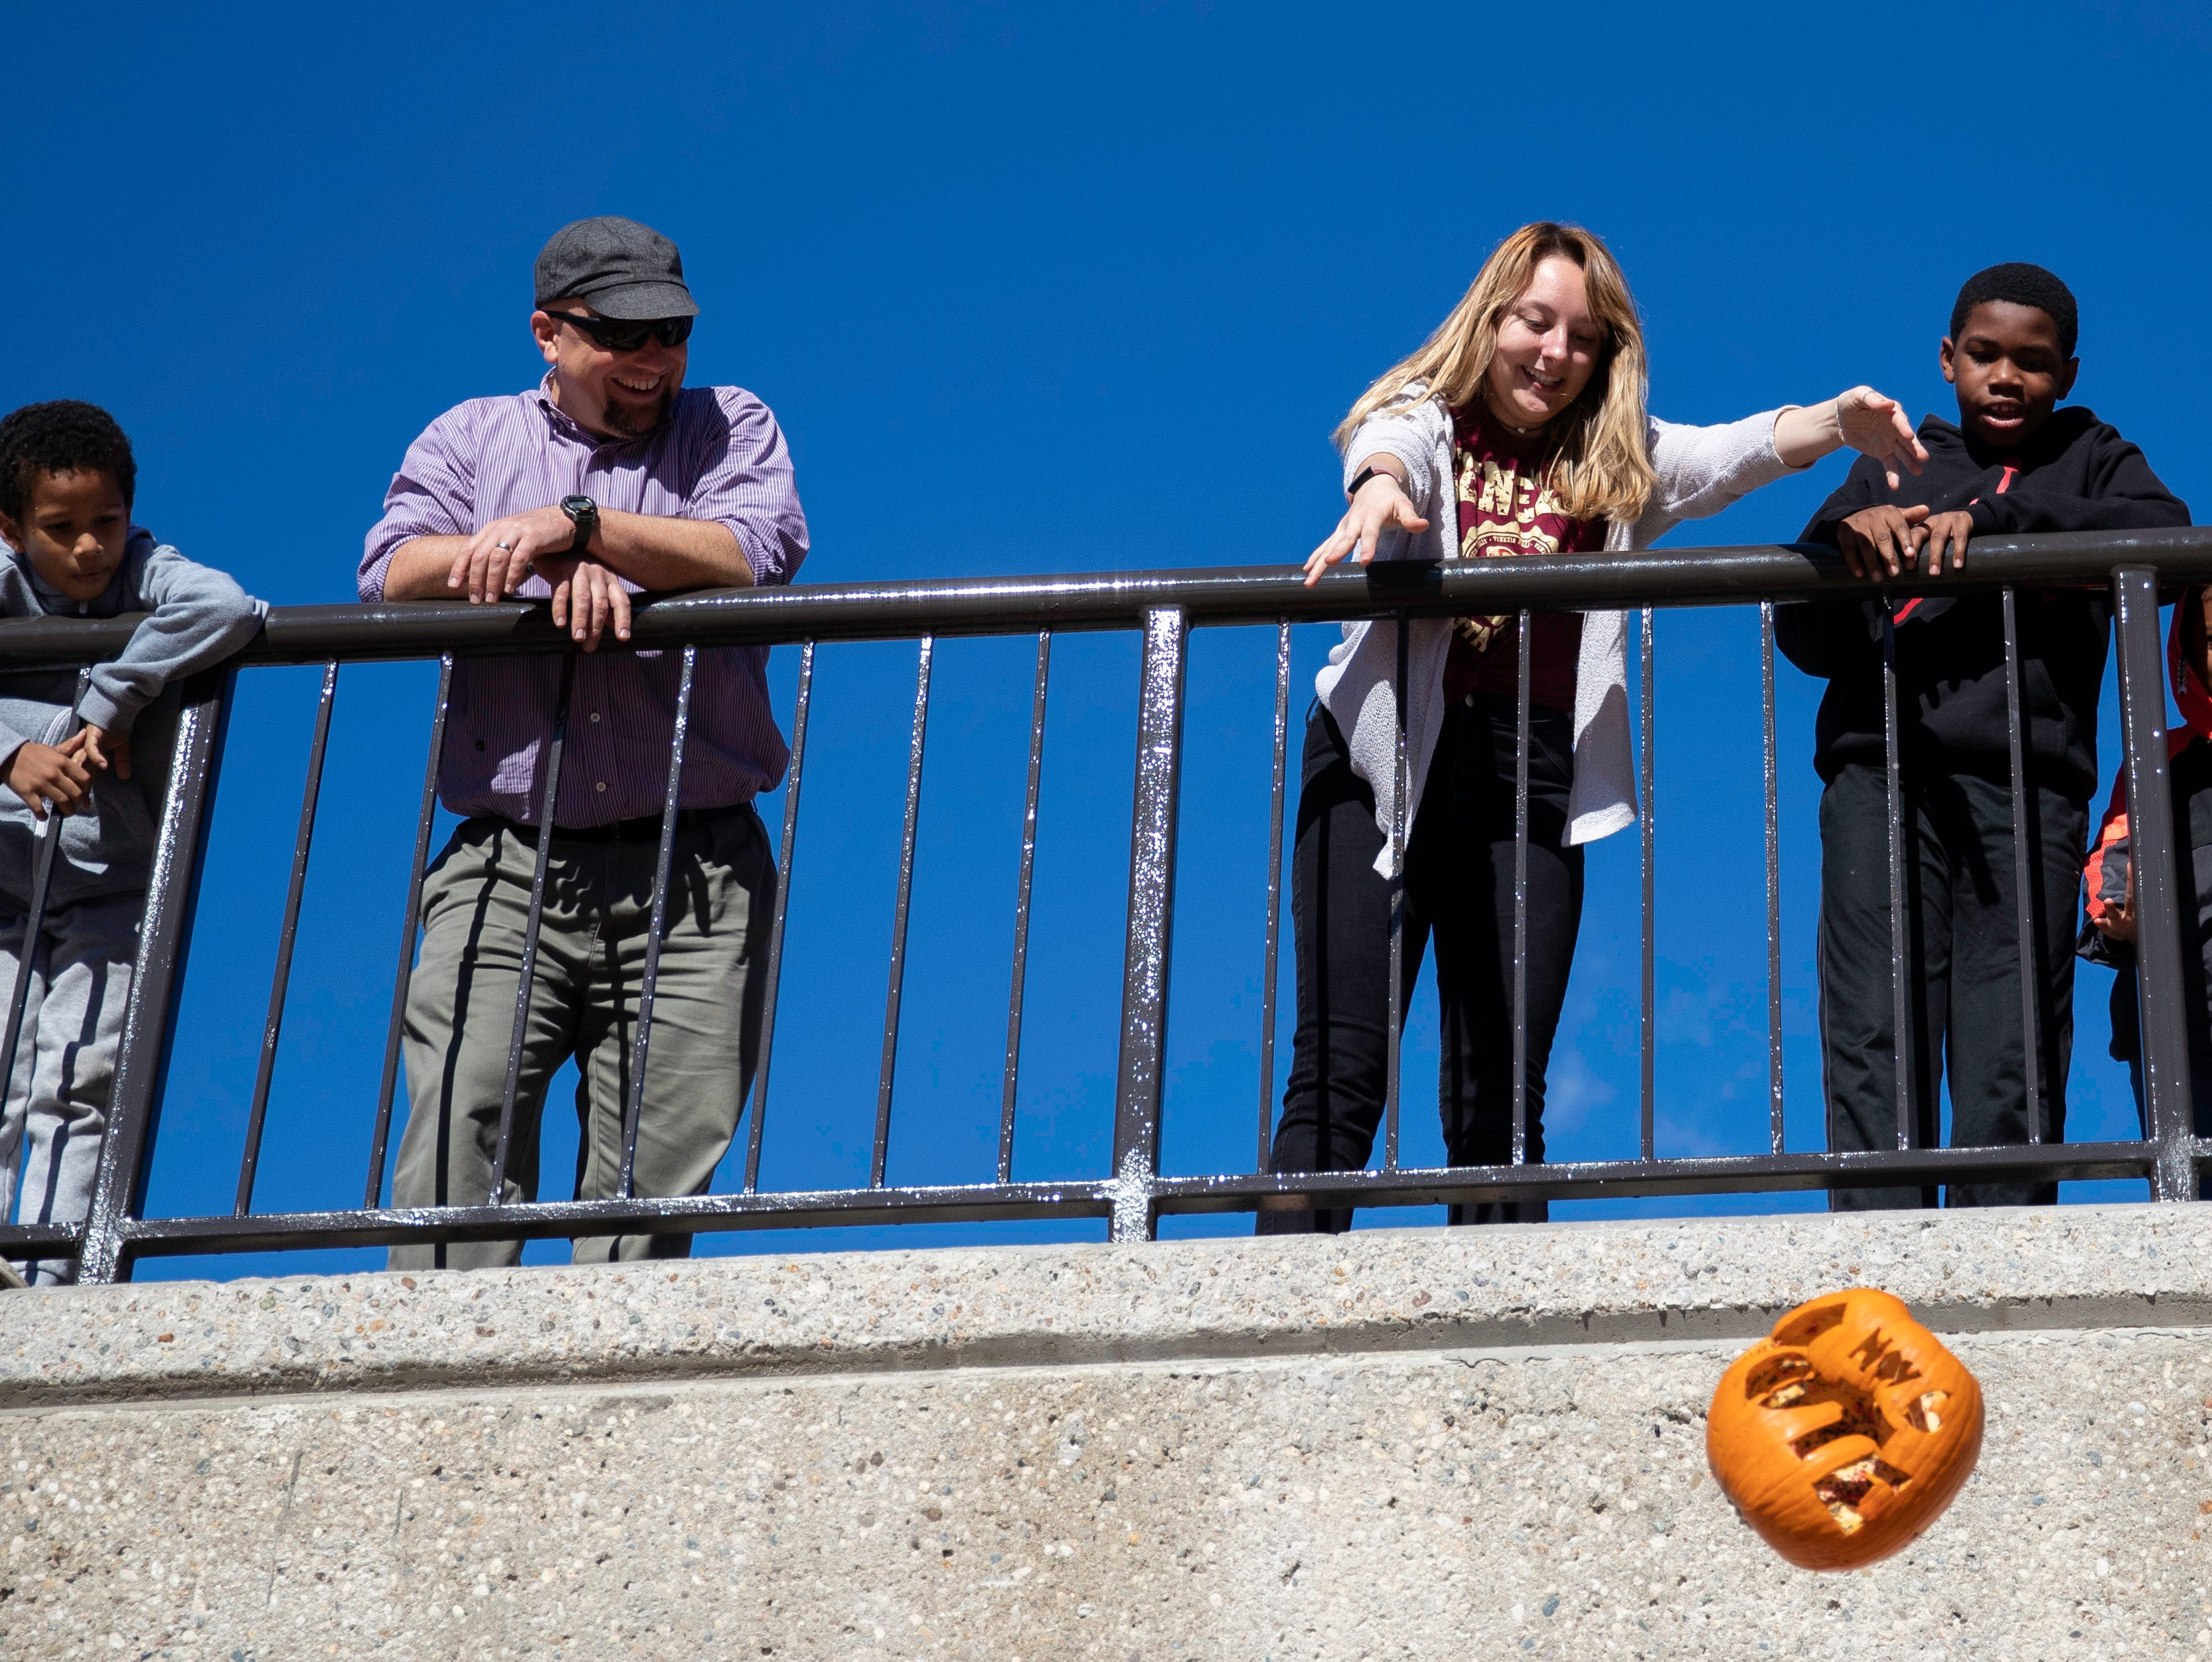 """Emory Jones threw the final """"Vote Nov 6"""" pumpkin off the SAC Ramp to conclude the pumpkin smashing event, Tuesday, Nov. 6, 2018 in Louisville Ky. The annual Pumpkin Smash in collaboration with the Office of Health Promotion, benefits UofL's Community Composting Project with all smashed pumpkins going into the compost to feed various community gardens, on and off UofL's campus."""